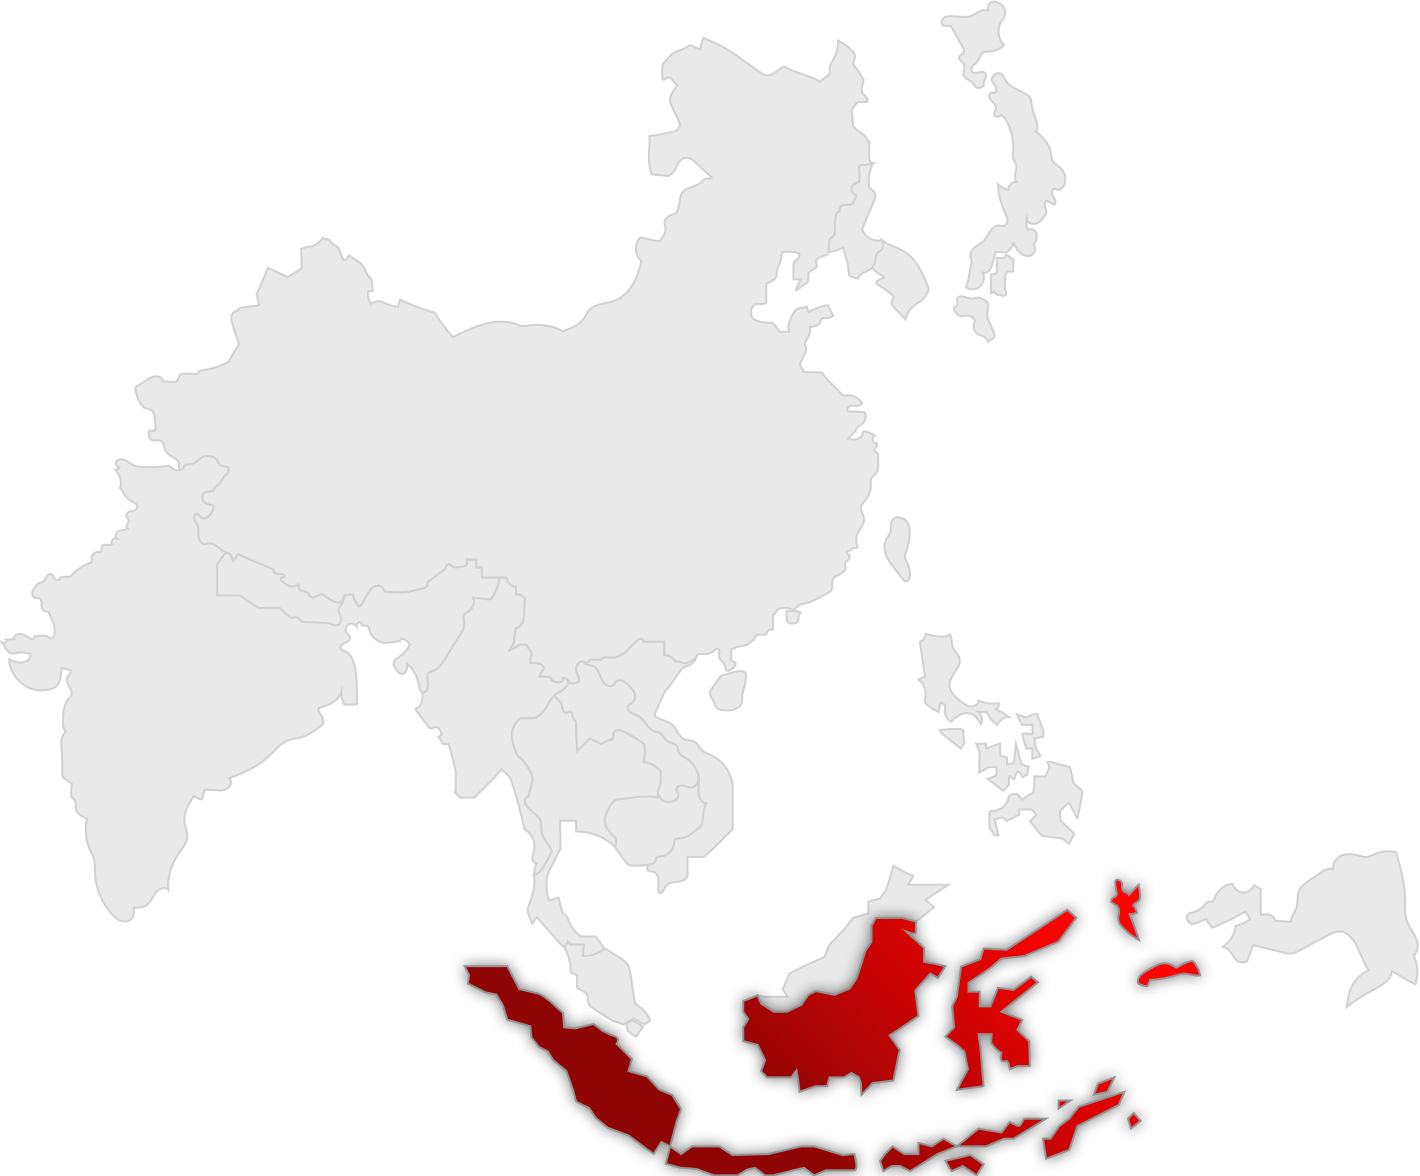 Map-Indonesia@2x